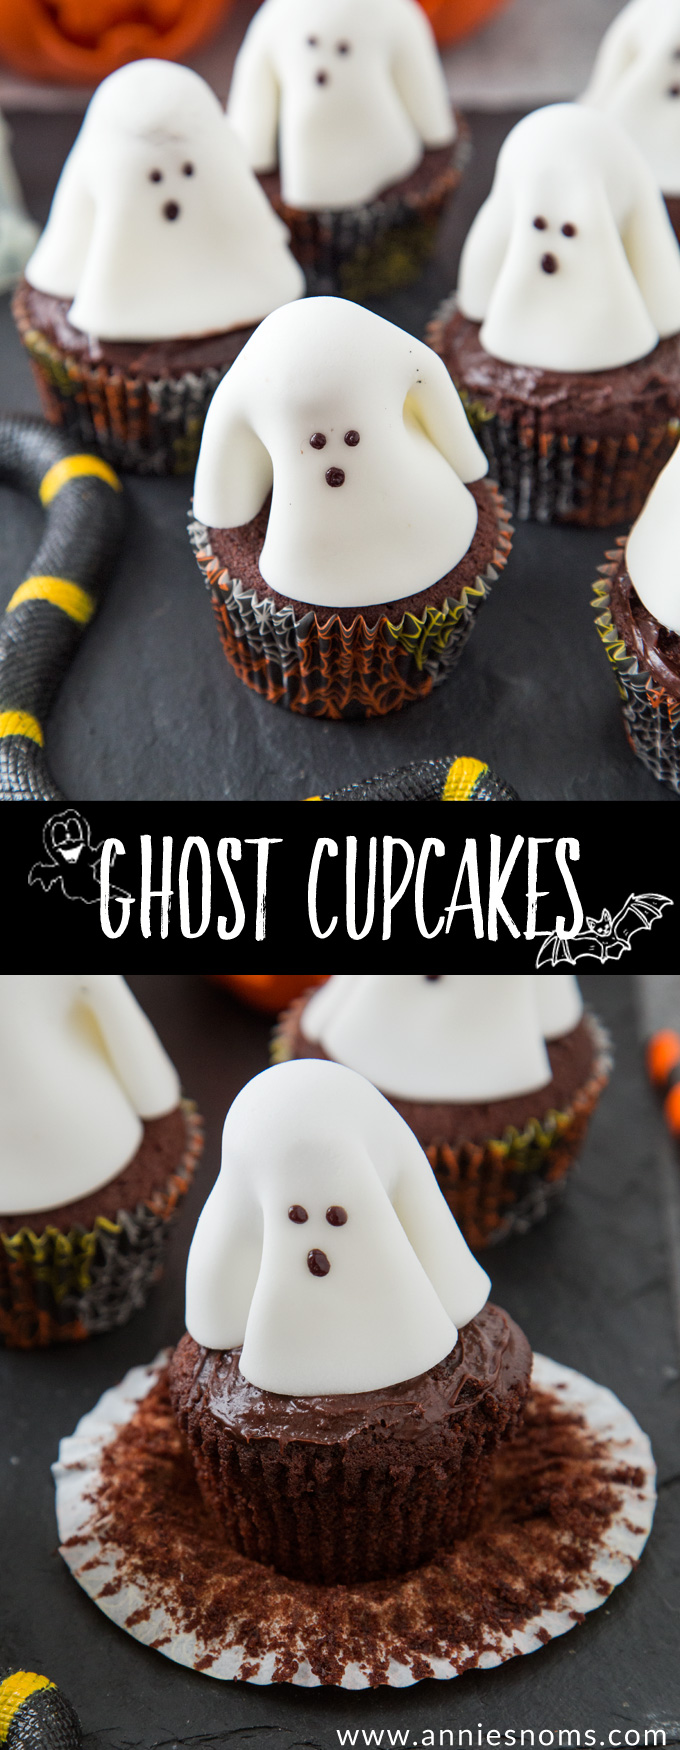 A chocolate frosted cupcake with a fondant ghost atop it; these Ghost Cupcakes are treats that adults and kids alike will love!